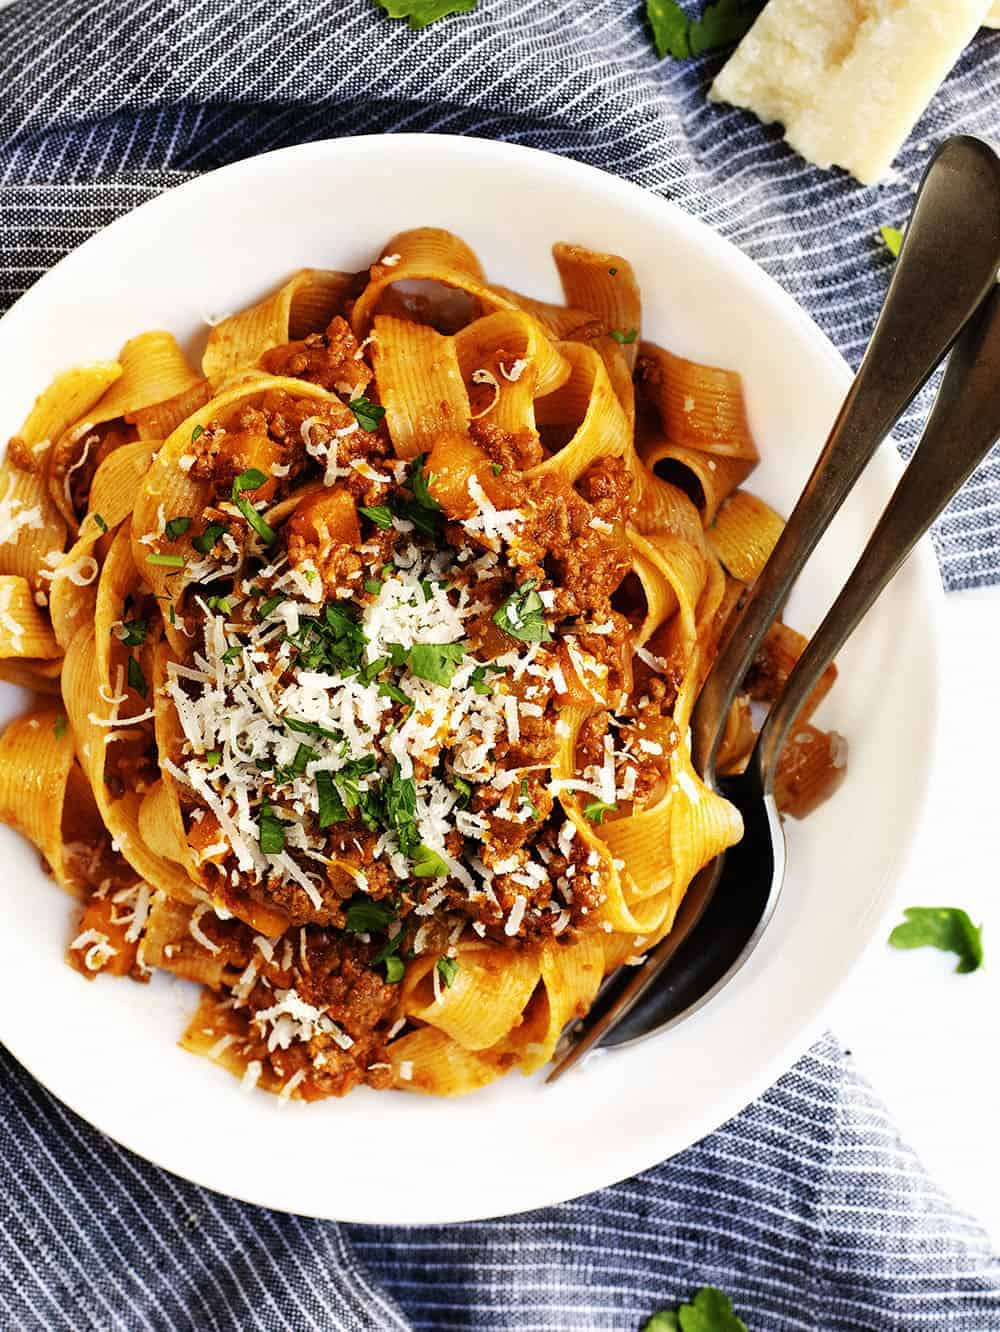 ragu sauce with pasta in a white bowl